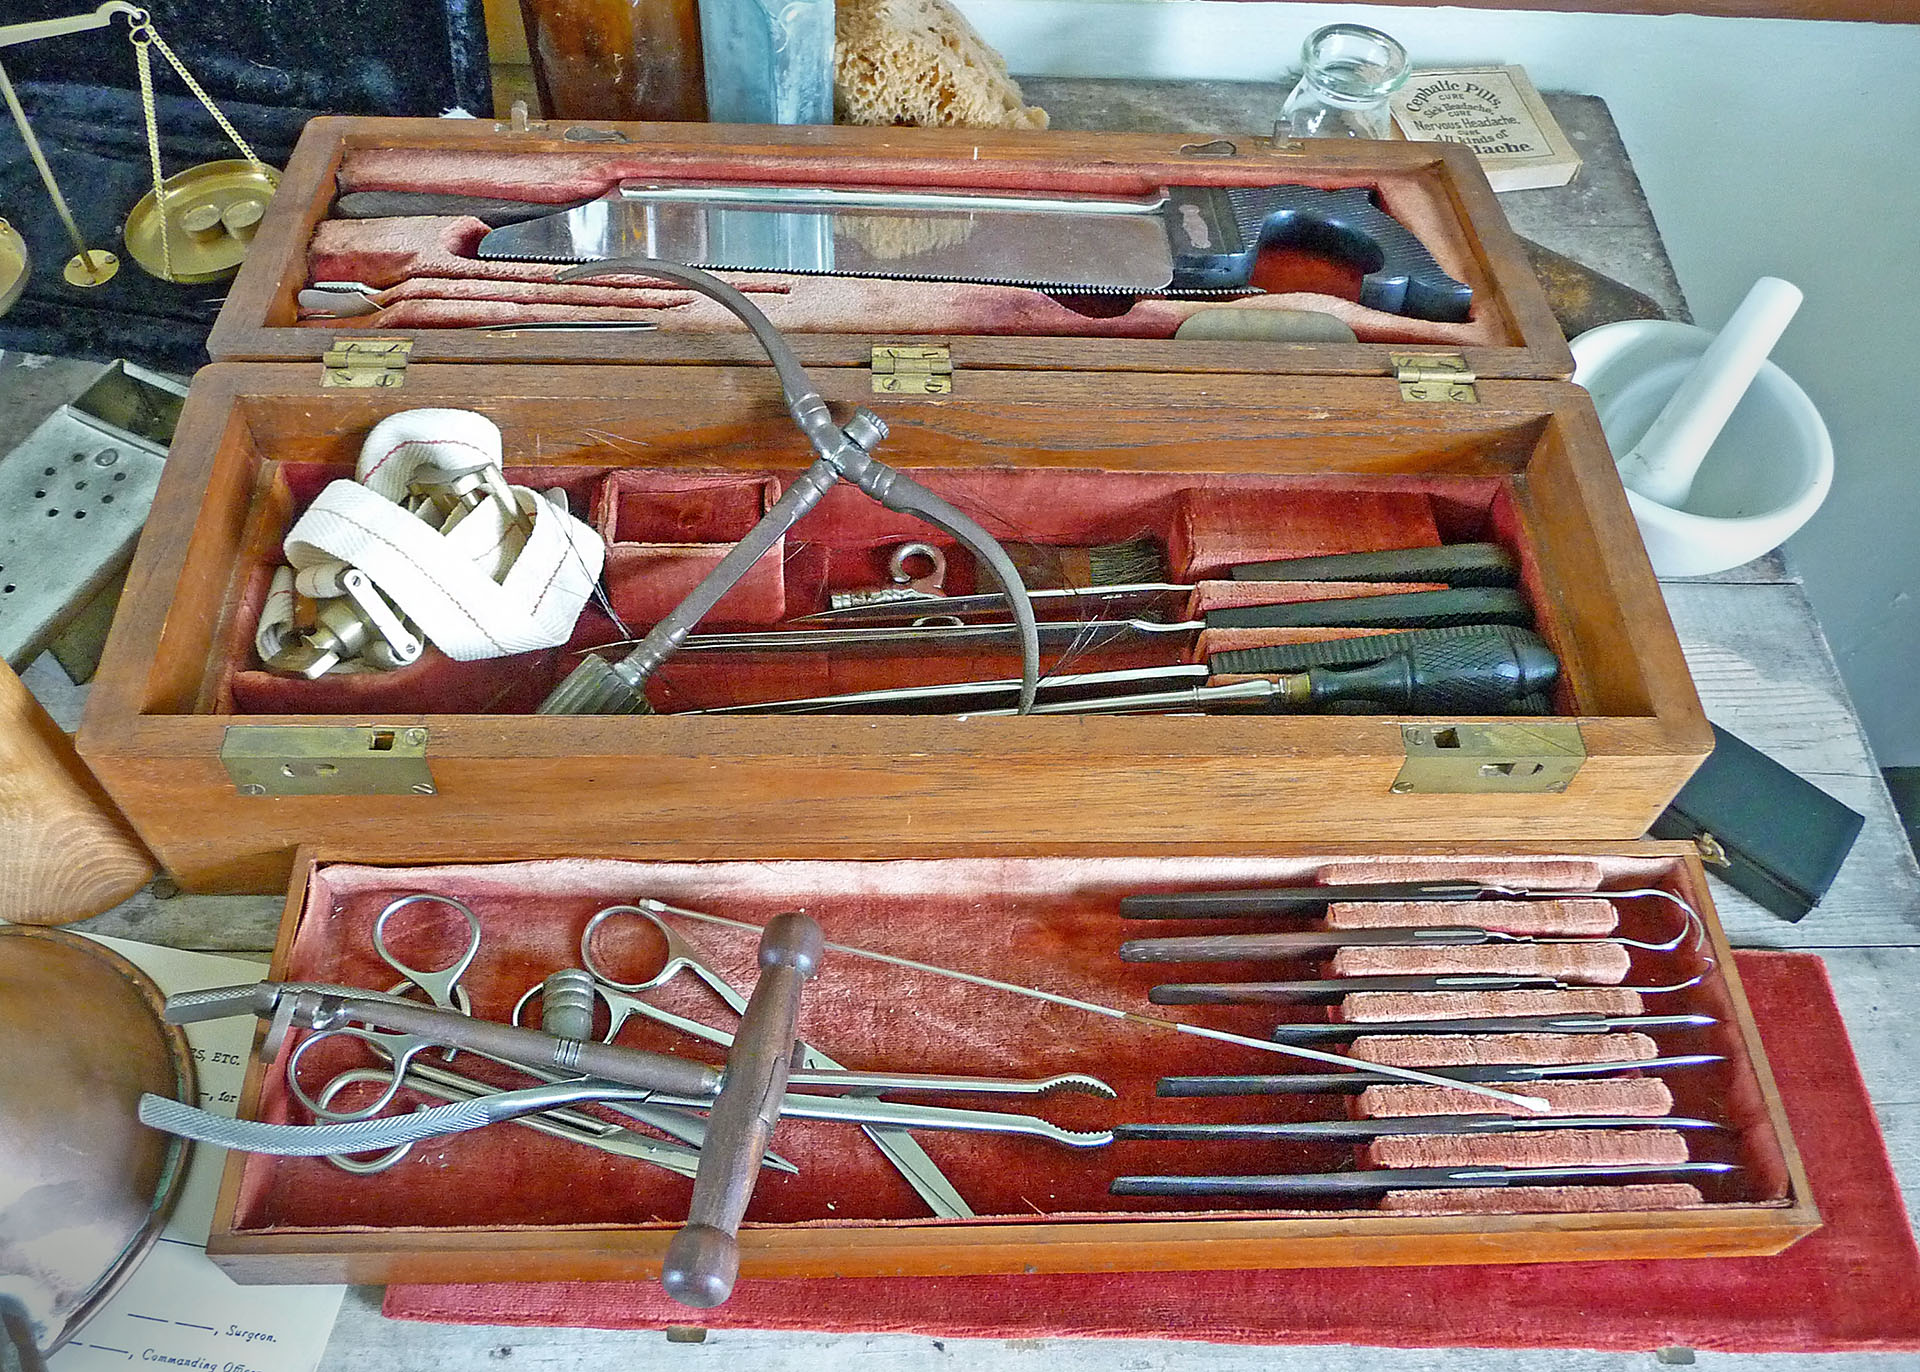 Frontier Medicine, 1865. Bone saw, tourniquet, scalpels, and other implements were standard equipment in a mid-century medical kit. Photograph courtesy of Wikimedia.